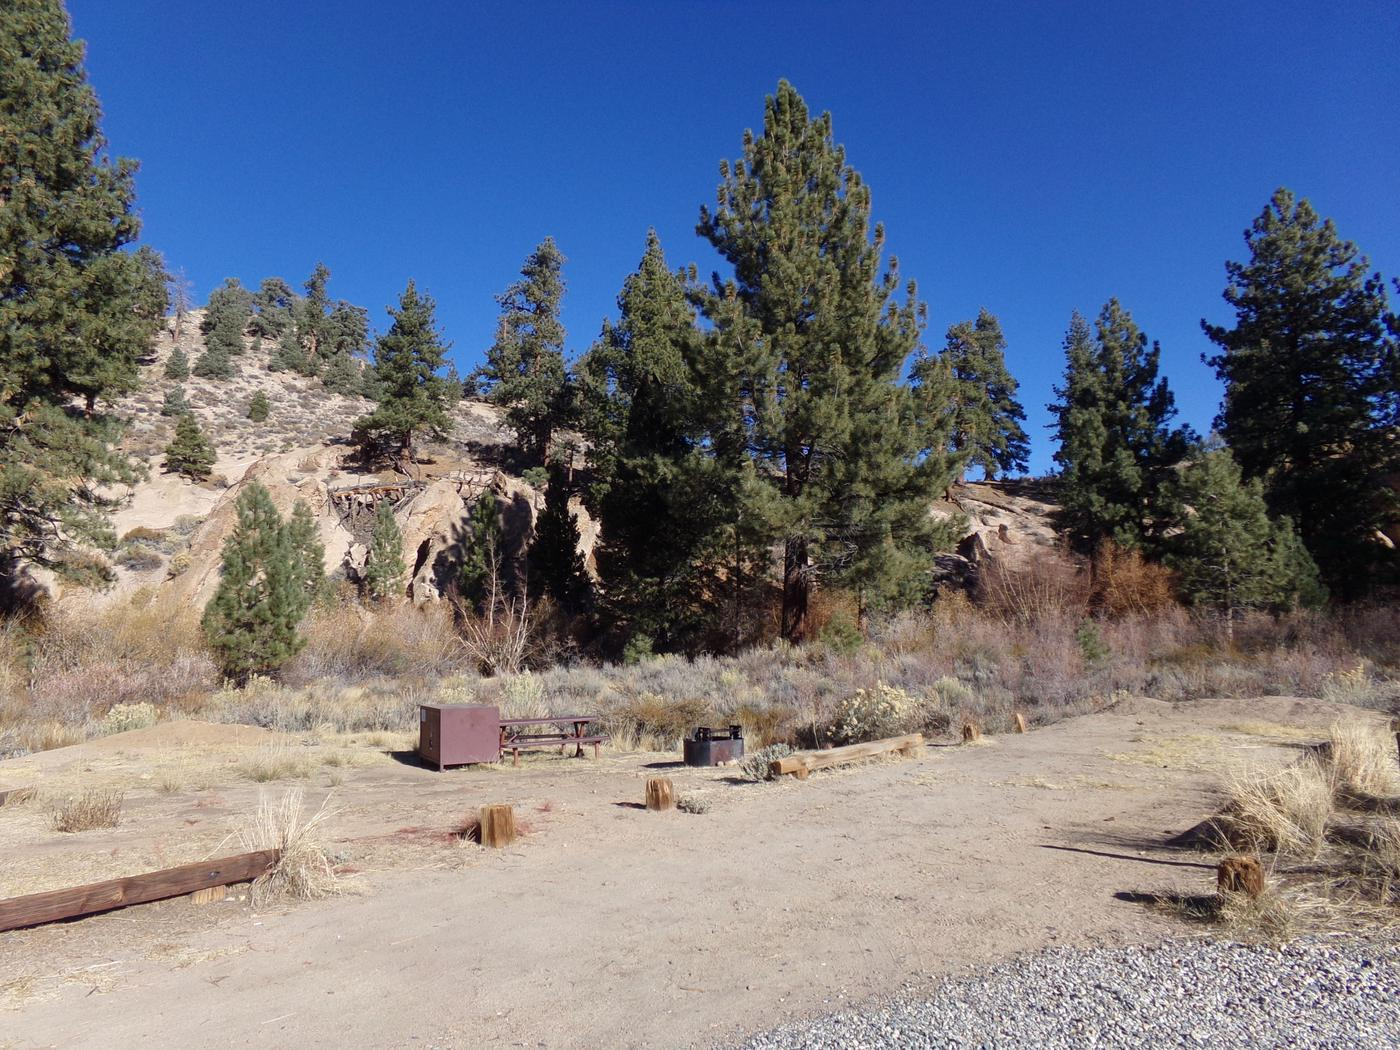 Parking space and entrance to site #32, Tuff Campground.